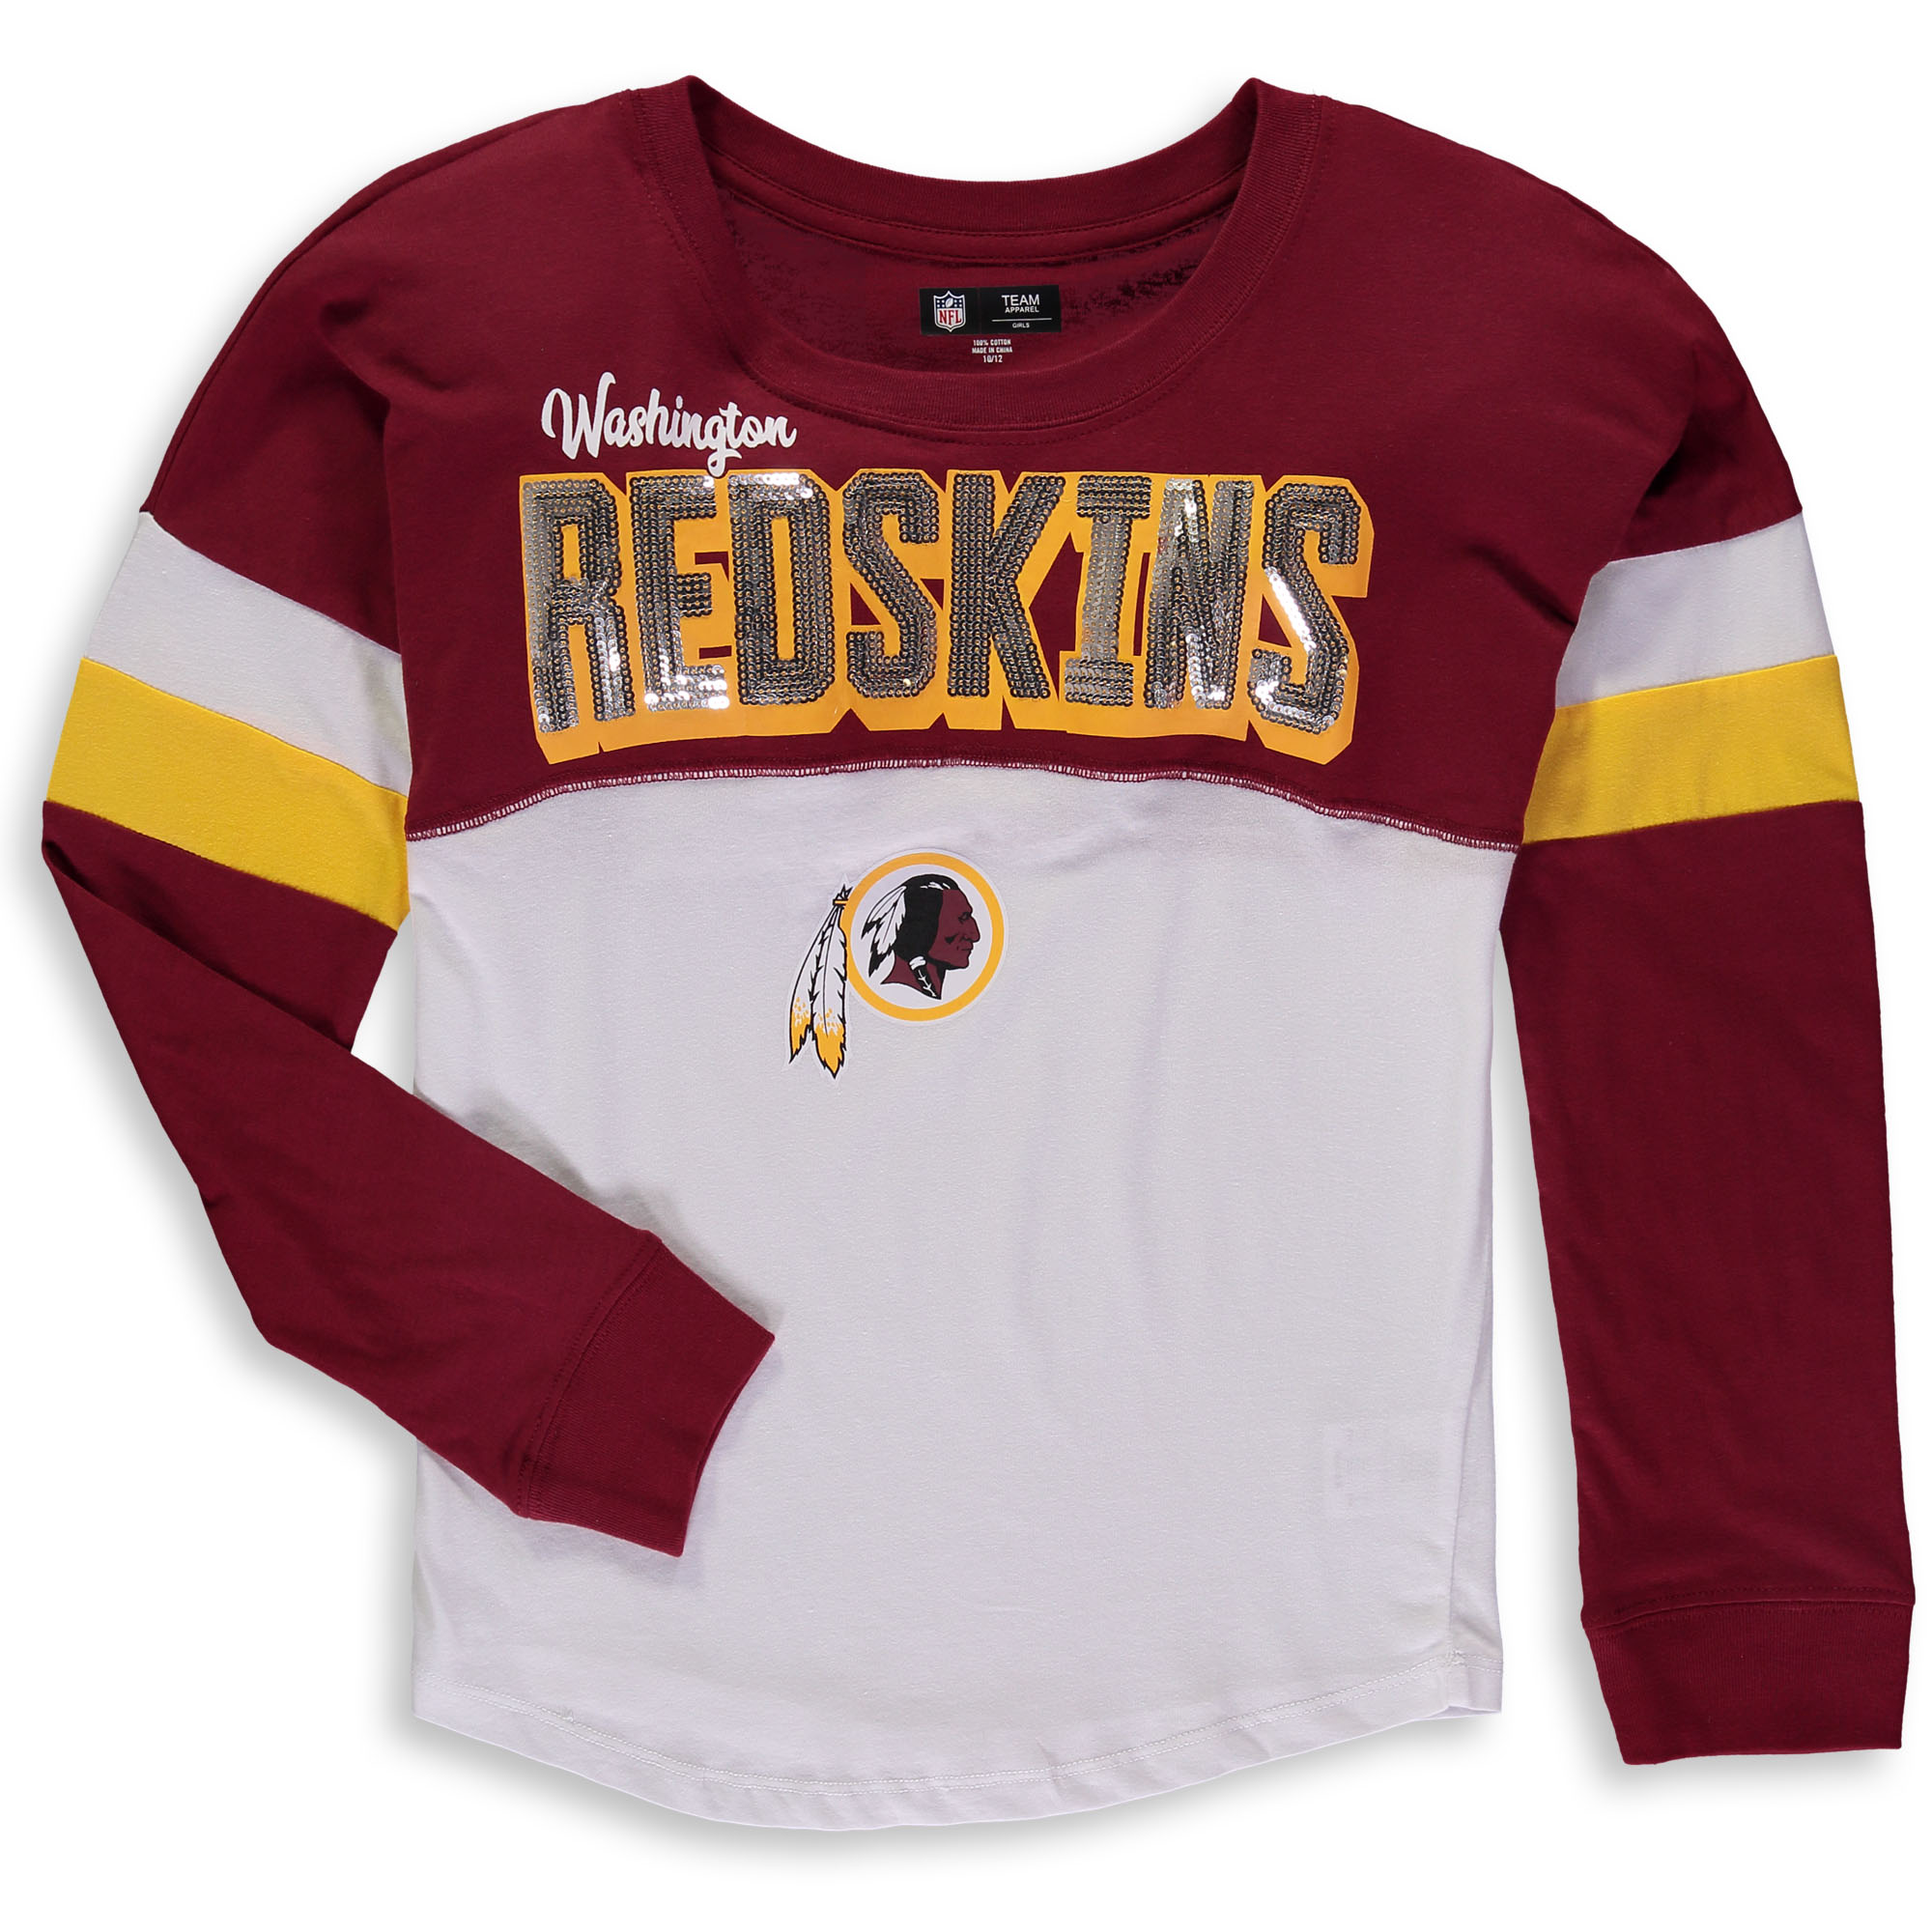 Washington Redskins New Era Girls Youth Baby Jersey Long Sleeve T-Shirt - White/Burgundy